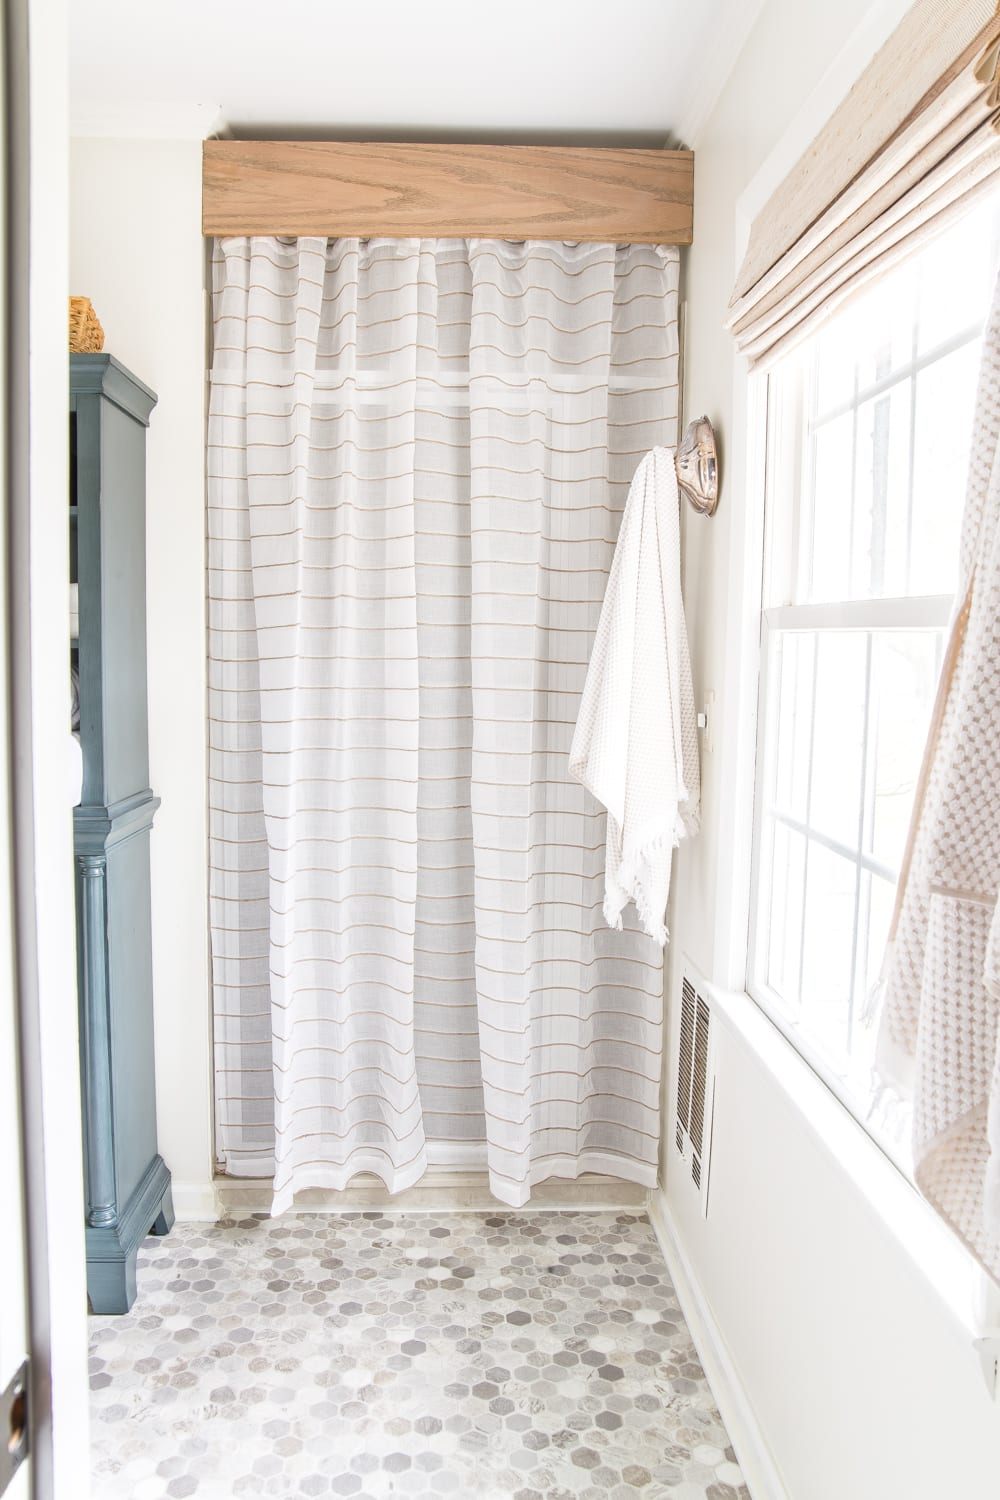 Big Impact Ways to Redecorate a Room Inexpensively | shower curtain hiding old shower door